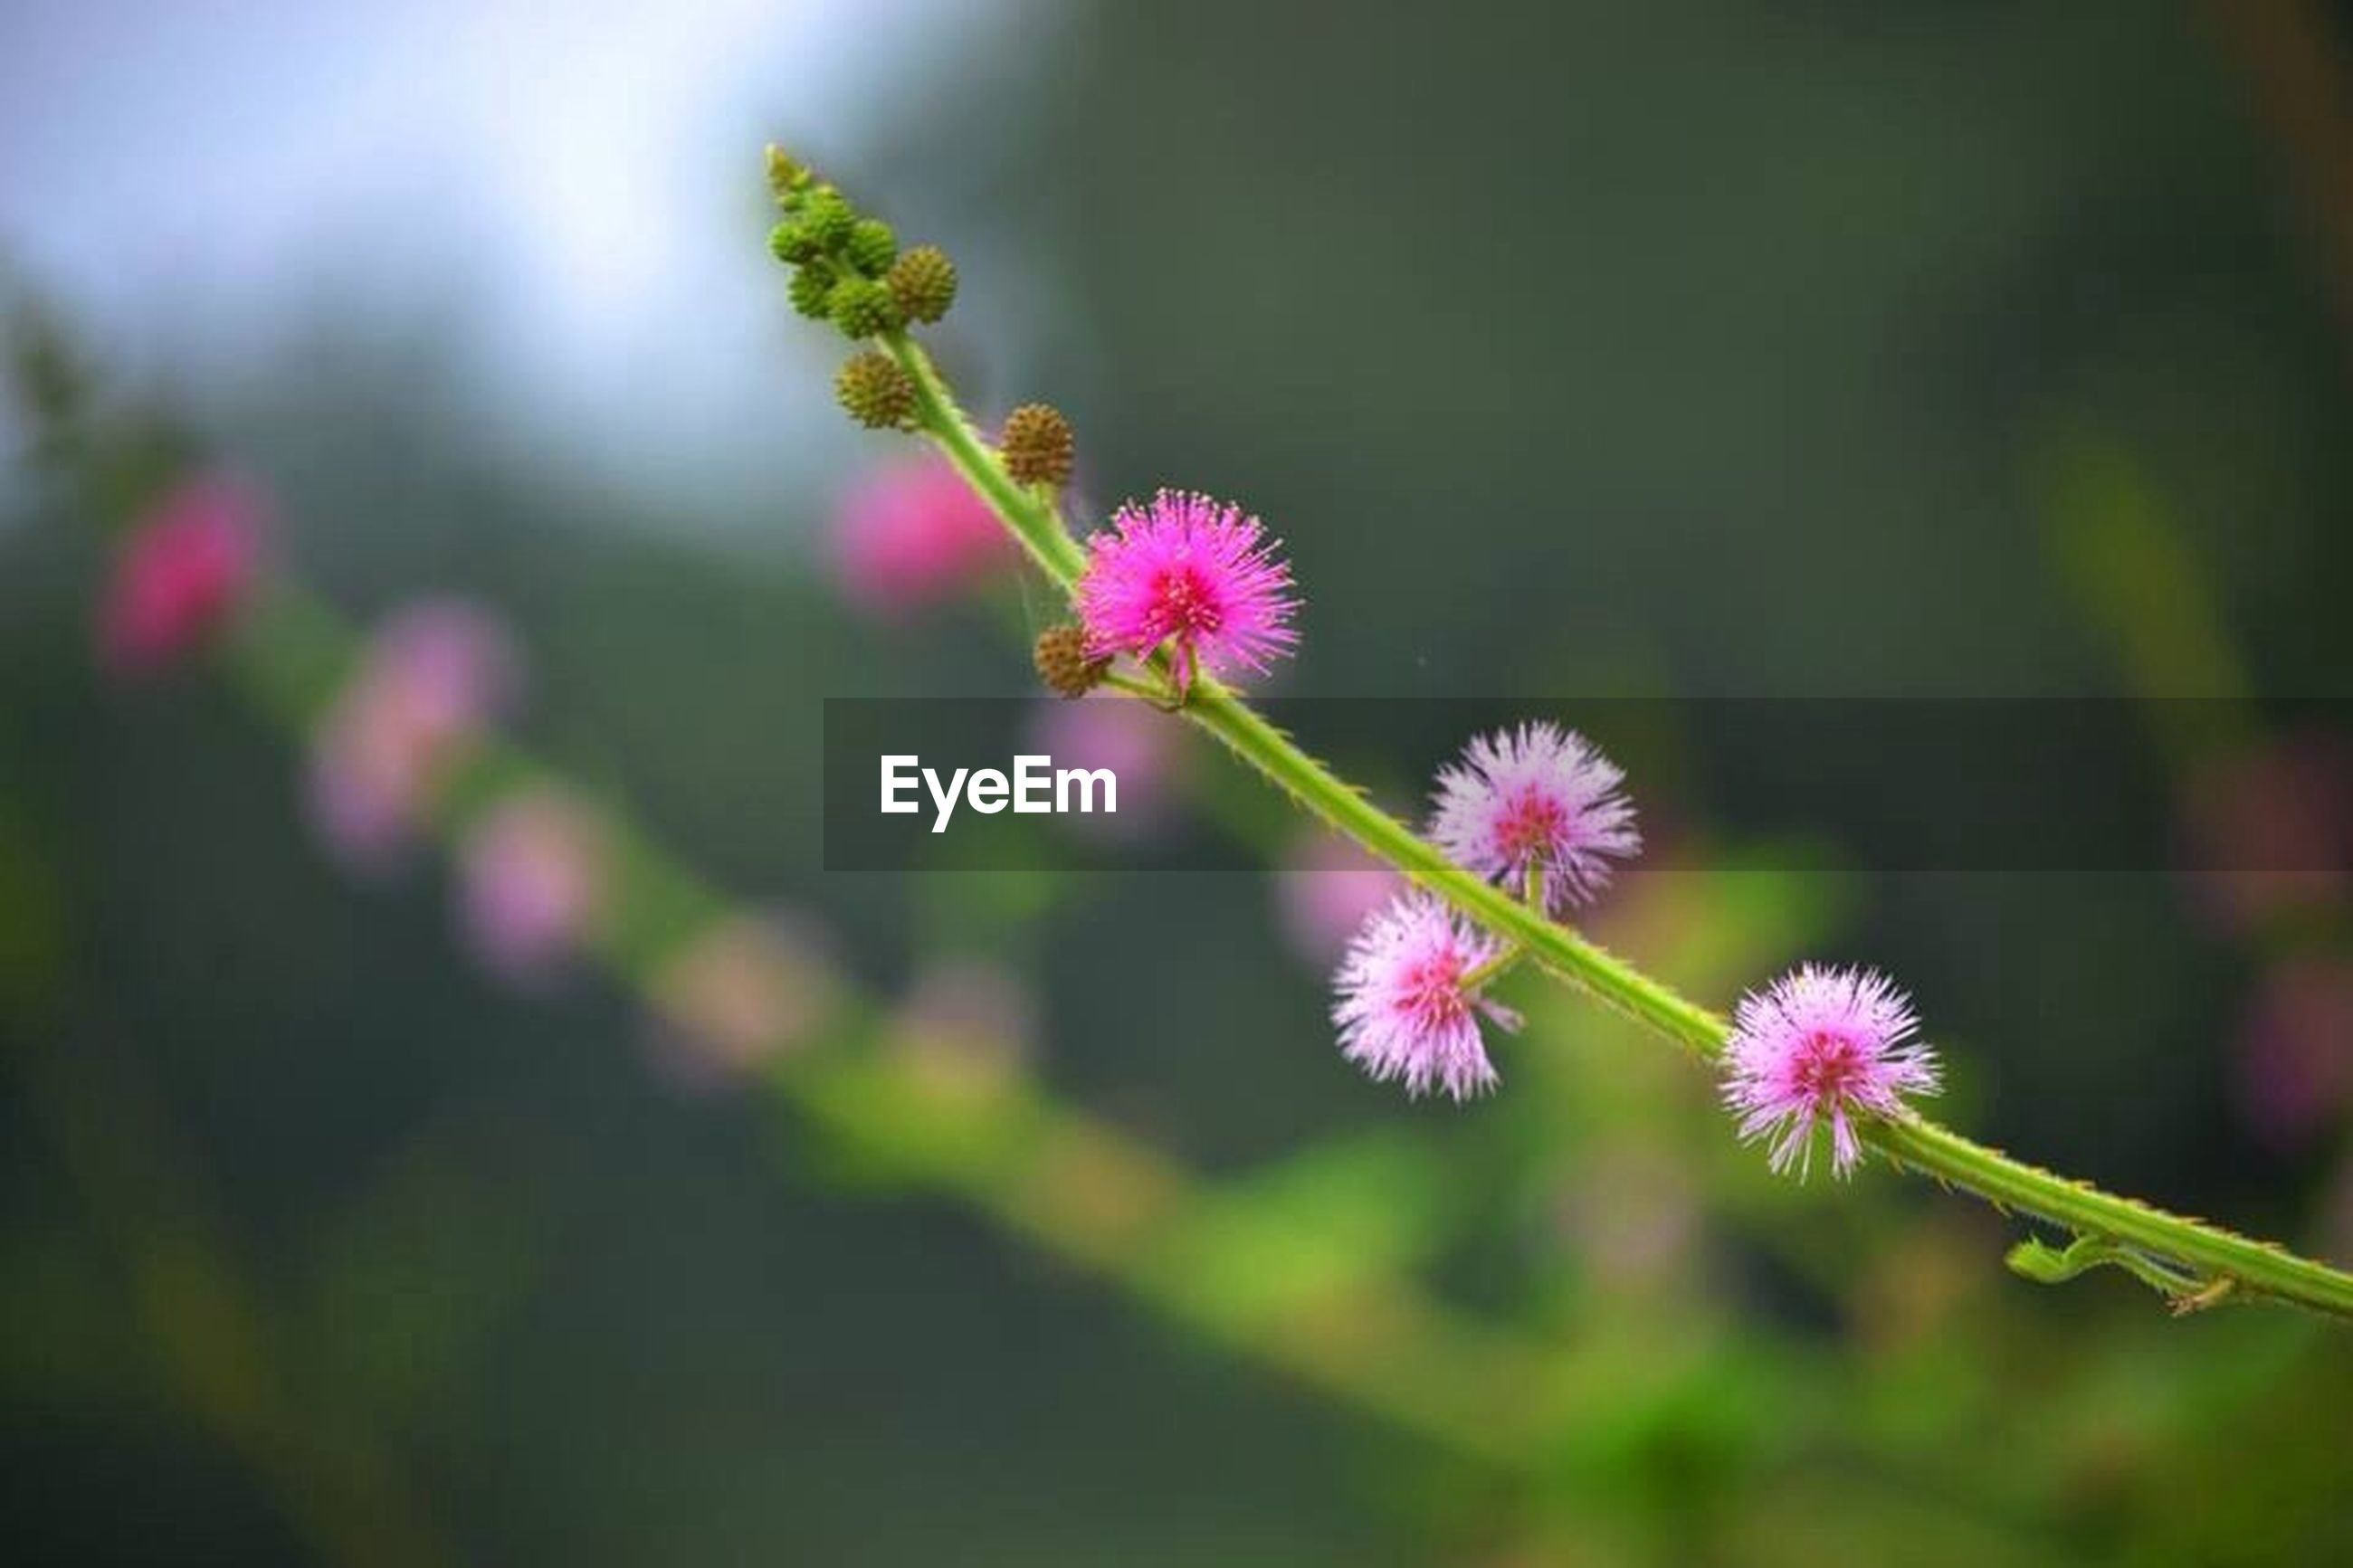 flower, freshness, growth, focus on foreground, fragility, pink color, close-up, beauty in nature, plant, nature, petal, stem, selective focus, bud, flower head, blooming, in bloom, pink, day, outdoors